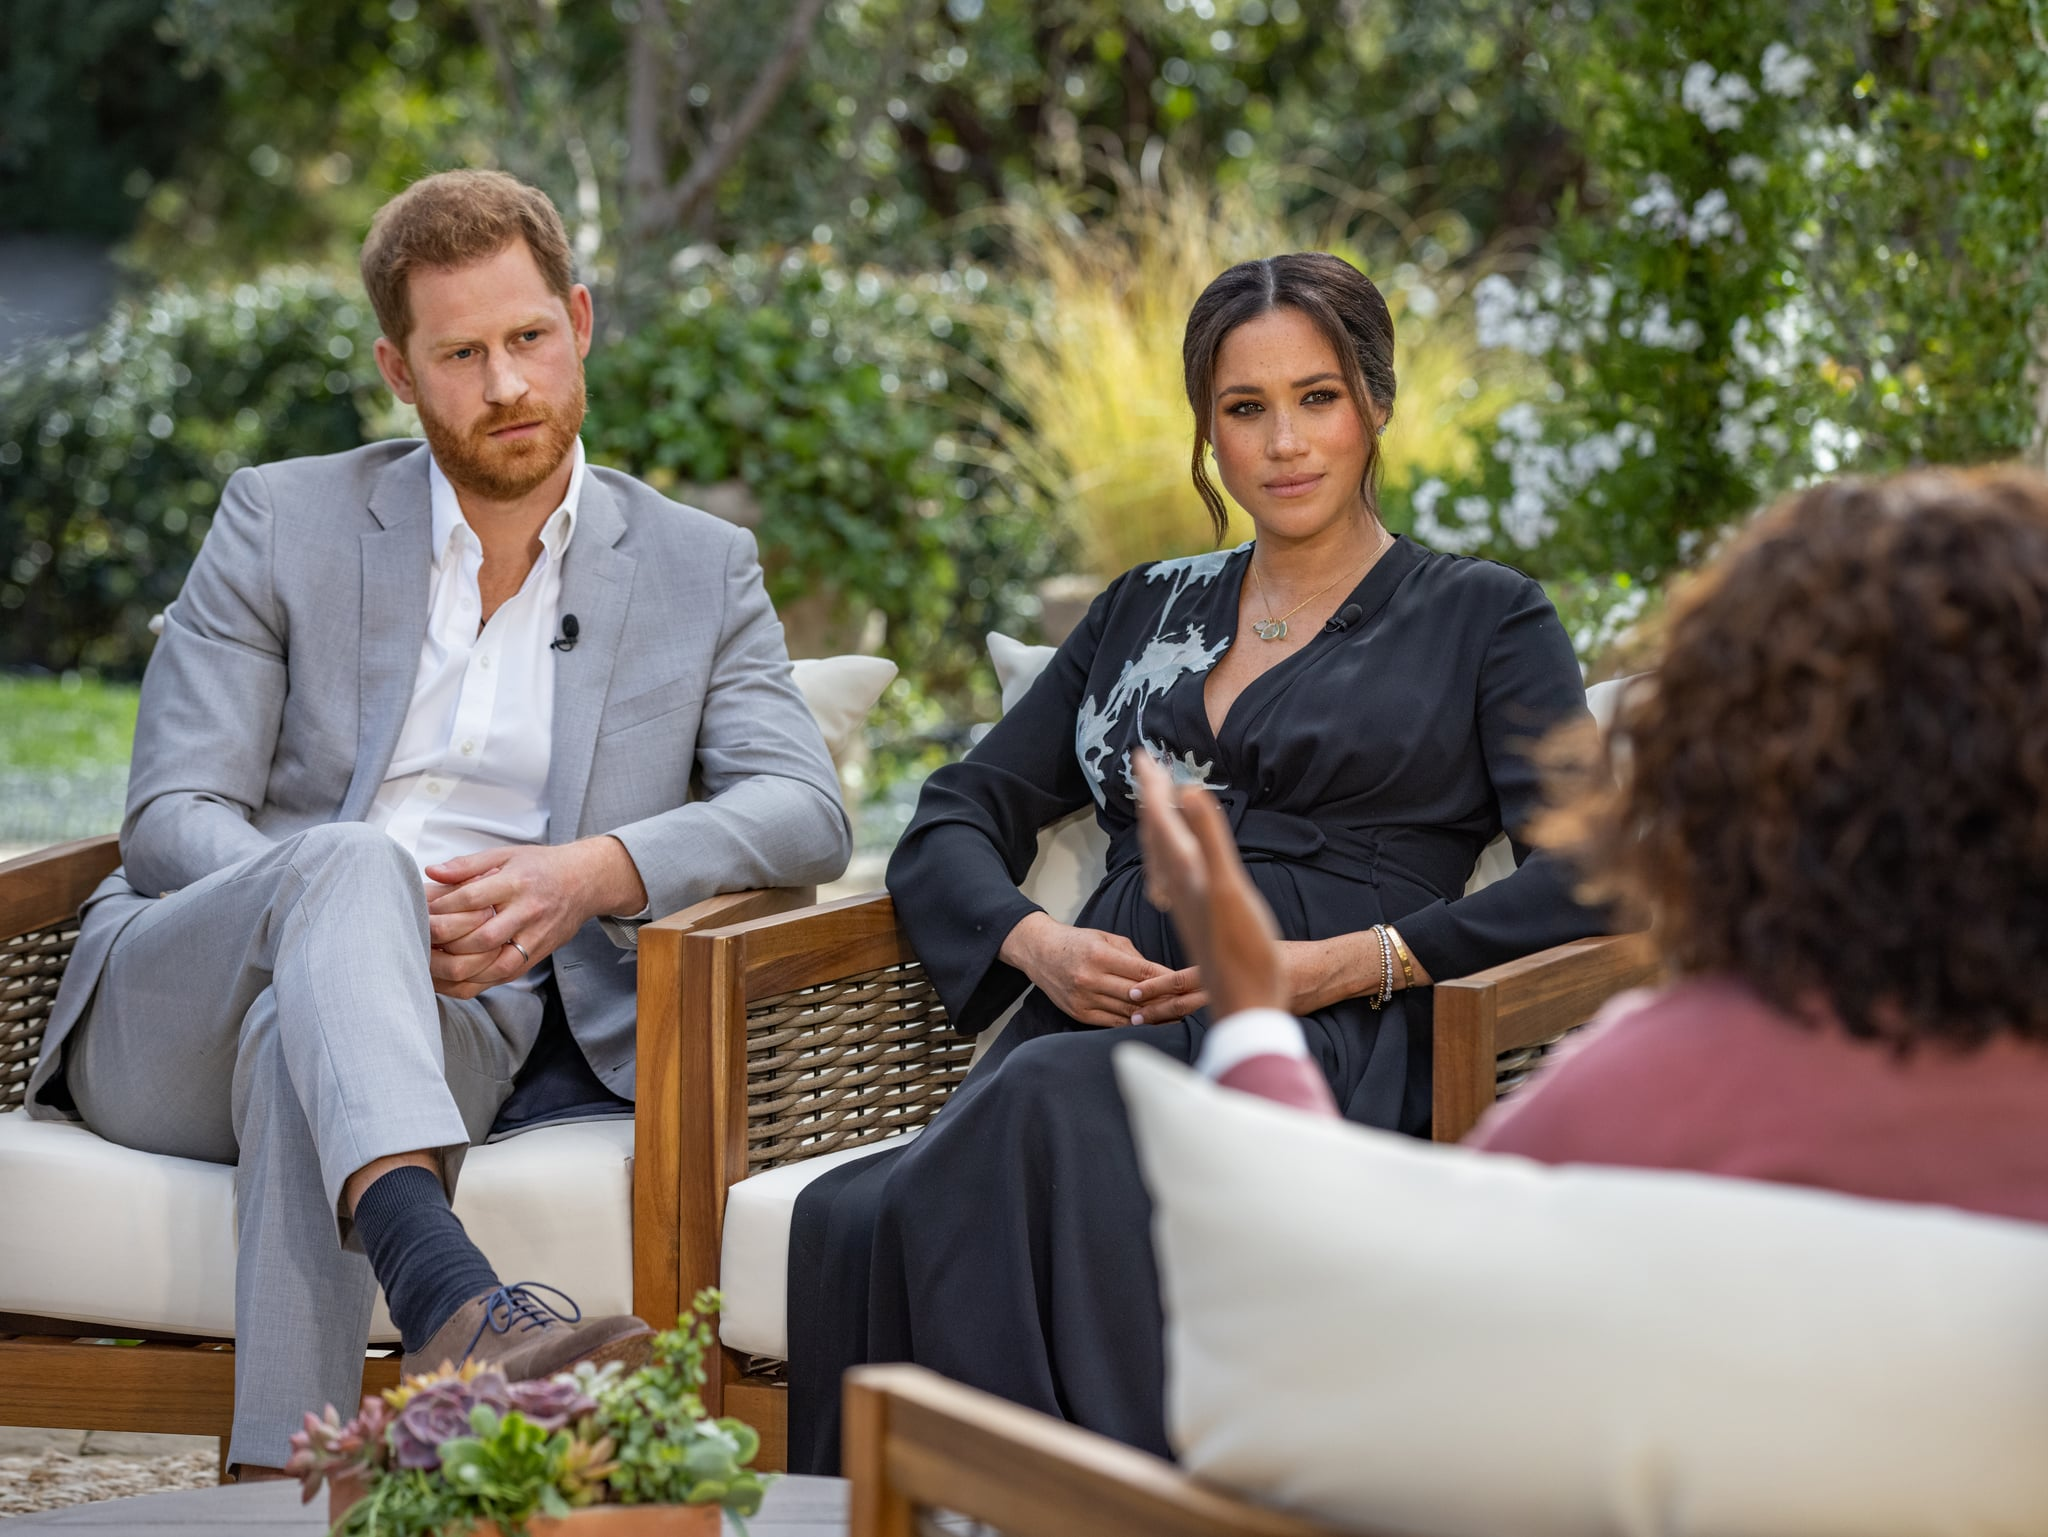 UNSPECIFIED - UNSPECIFIED: In this handout image provided by Harpo Productions and released on March 5, 2021, Oprah Winfrey interviews Prince Harry and Meghan Markle on A CBS Primetime Special premiering on CBS on March 7, 2021. (Photo by Harpo Productions/Joe Pugliese via Getty Images)